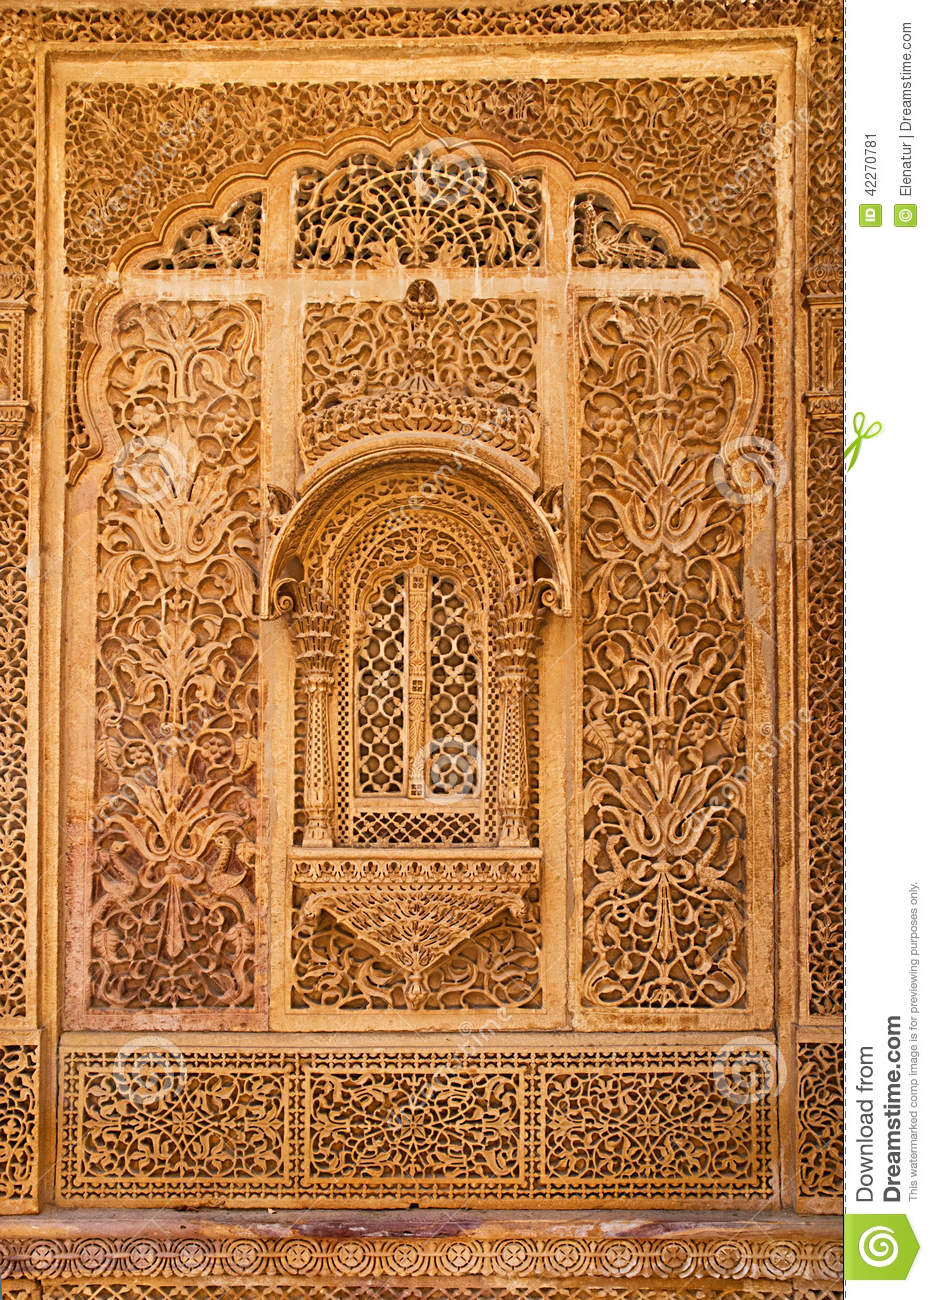 Stone Carving Wall Art